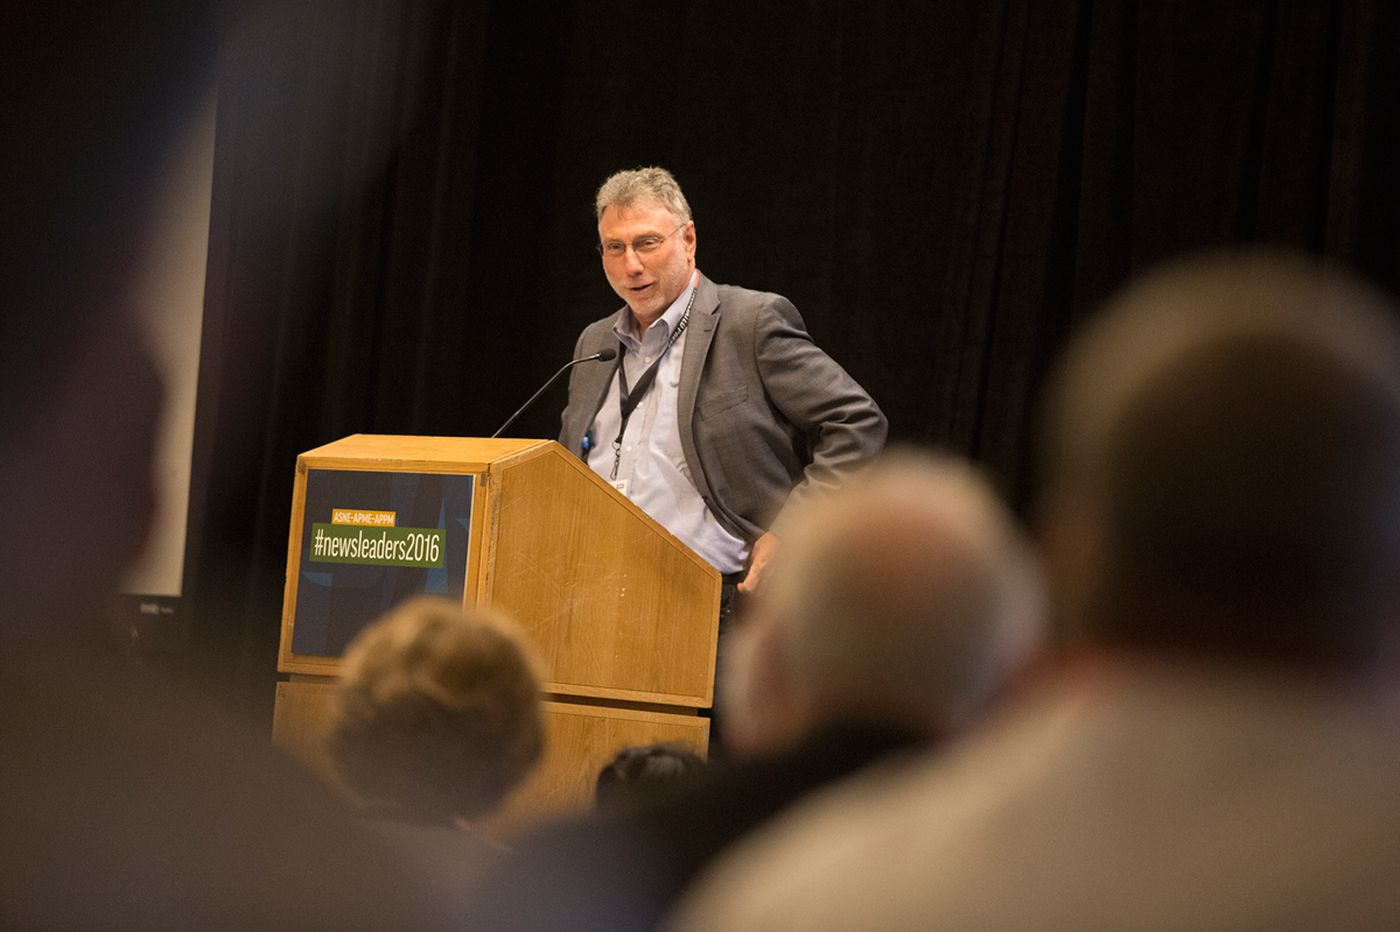 WaPo's Marty Baron, others speak of the future of news at ASNE